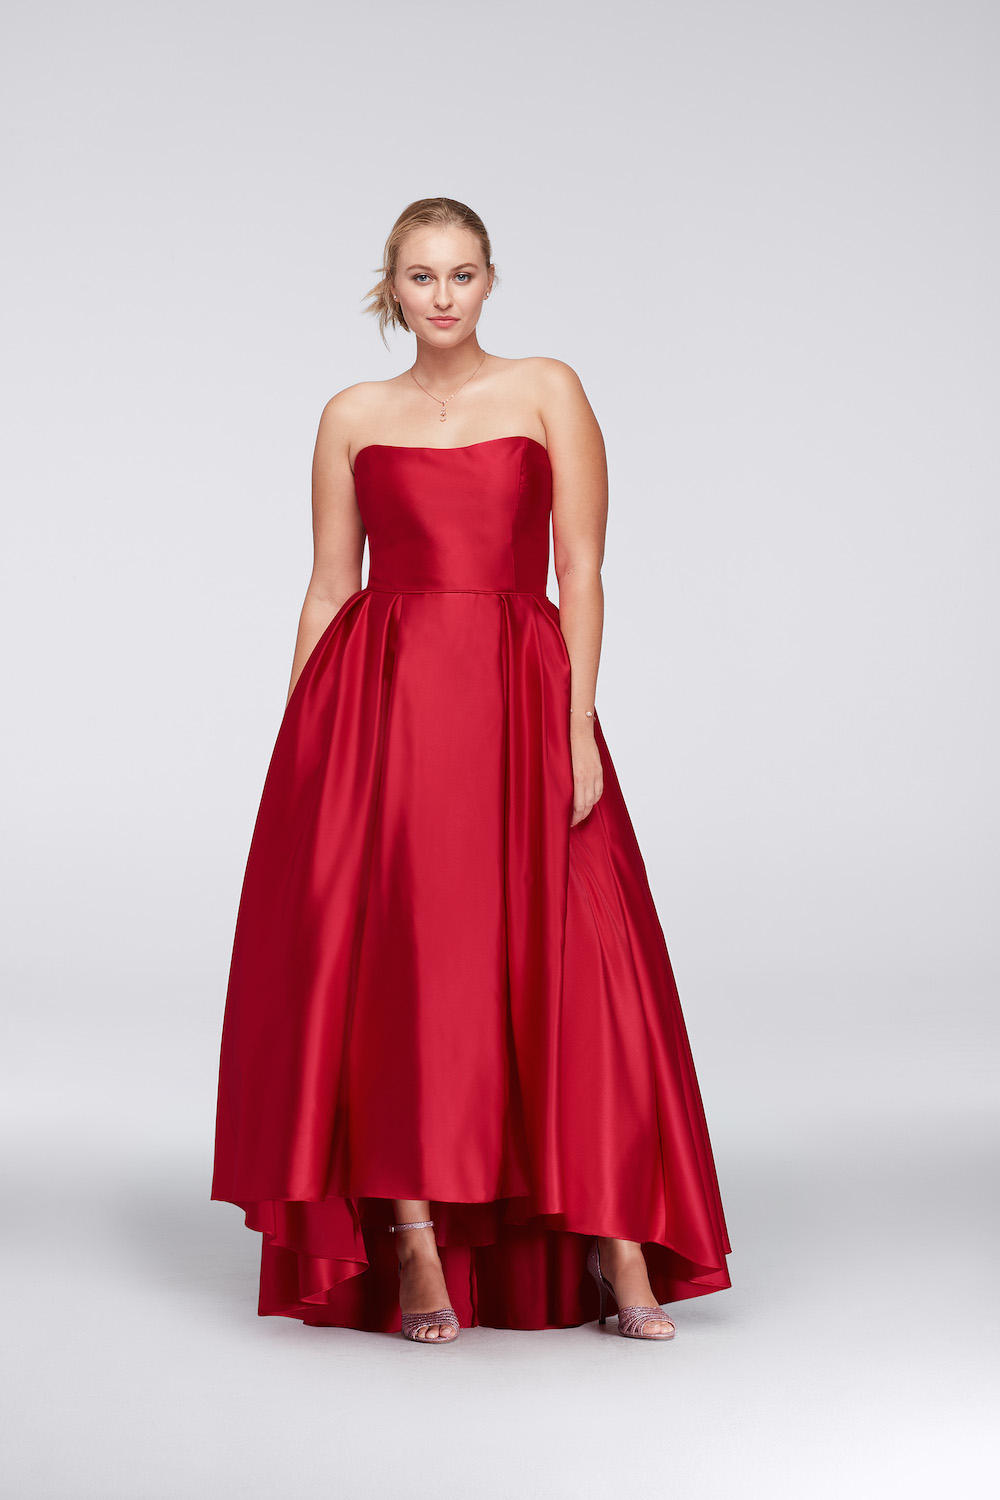 38 Best Red Prom Dresses for 2017 - Bold Red Formal